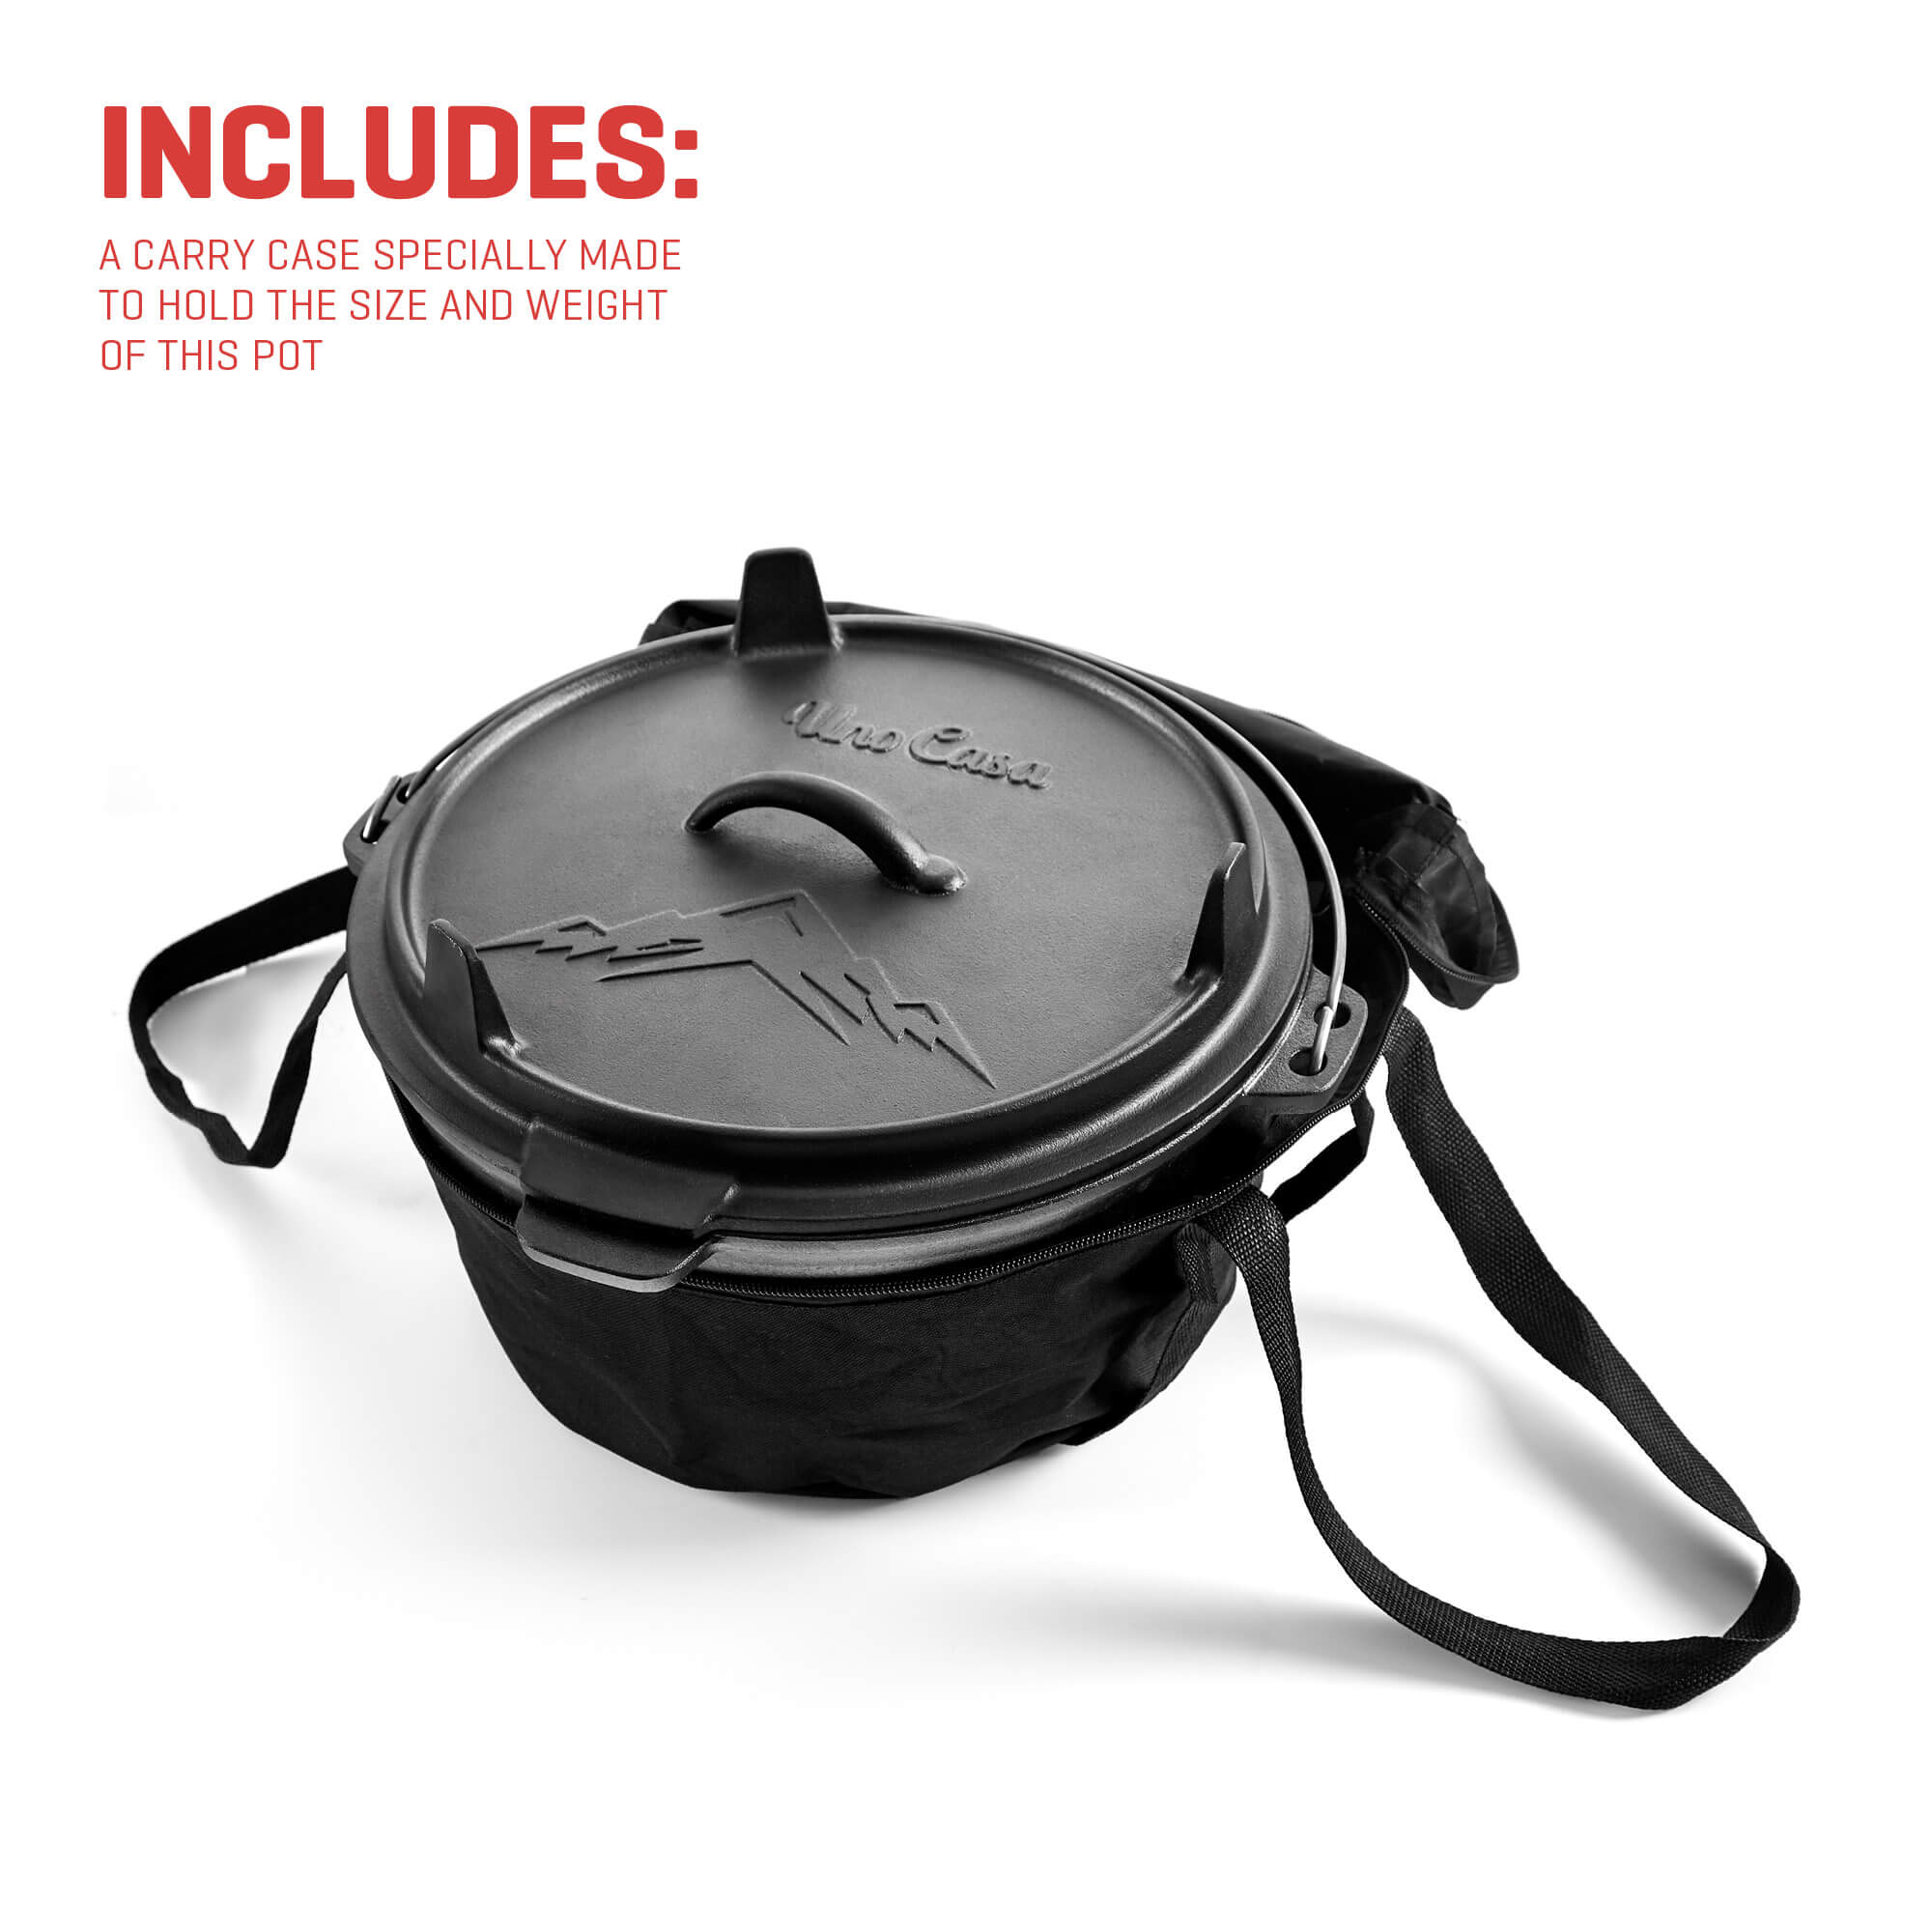 camping dutch oven includes